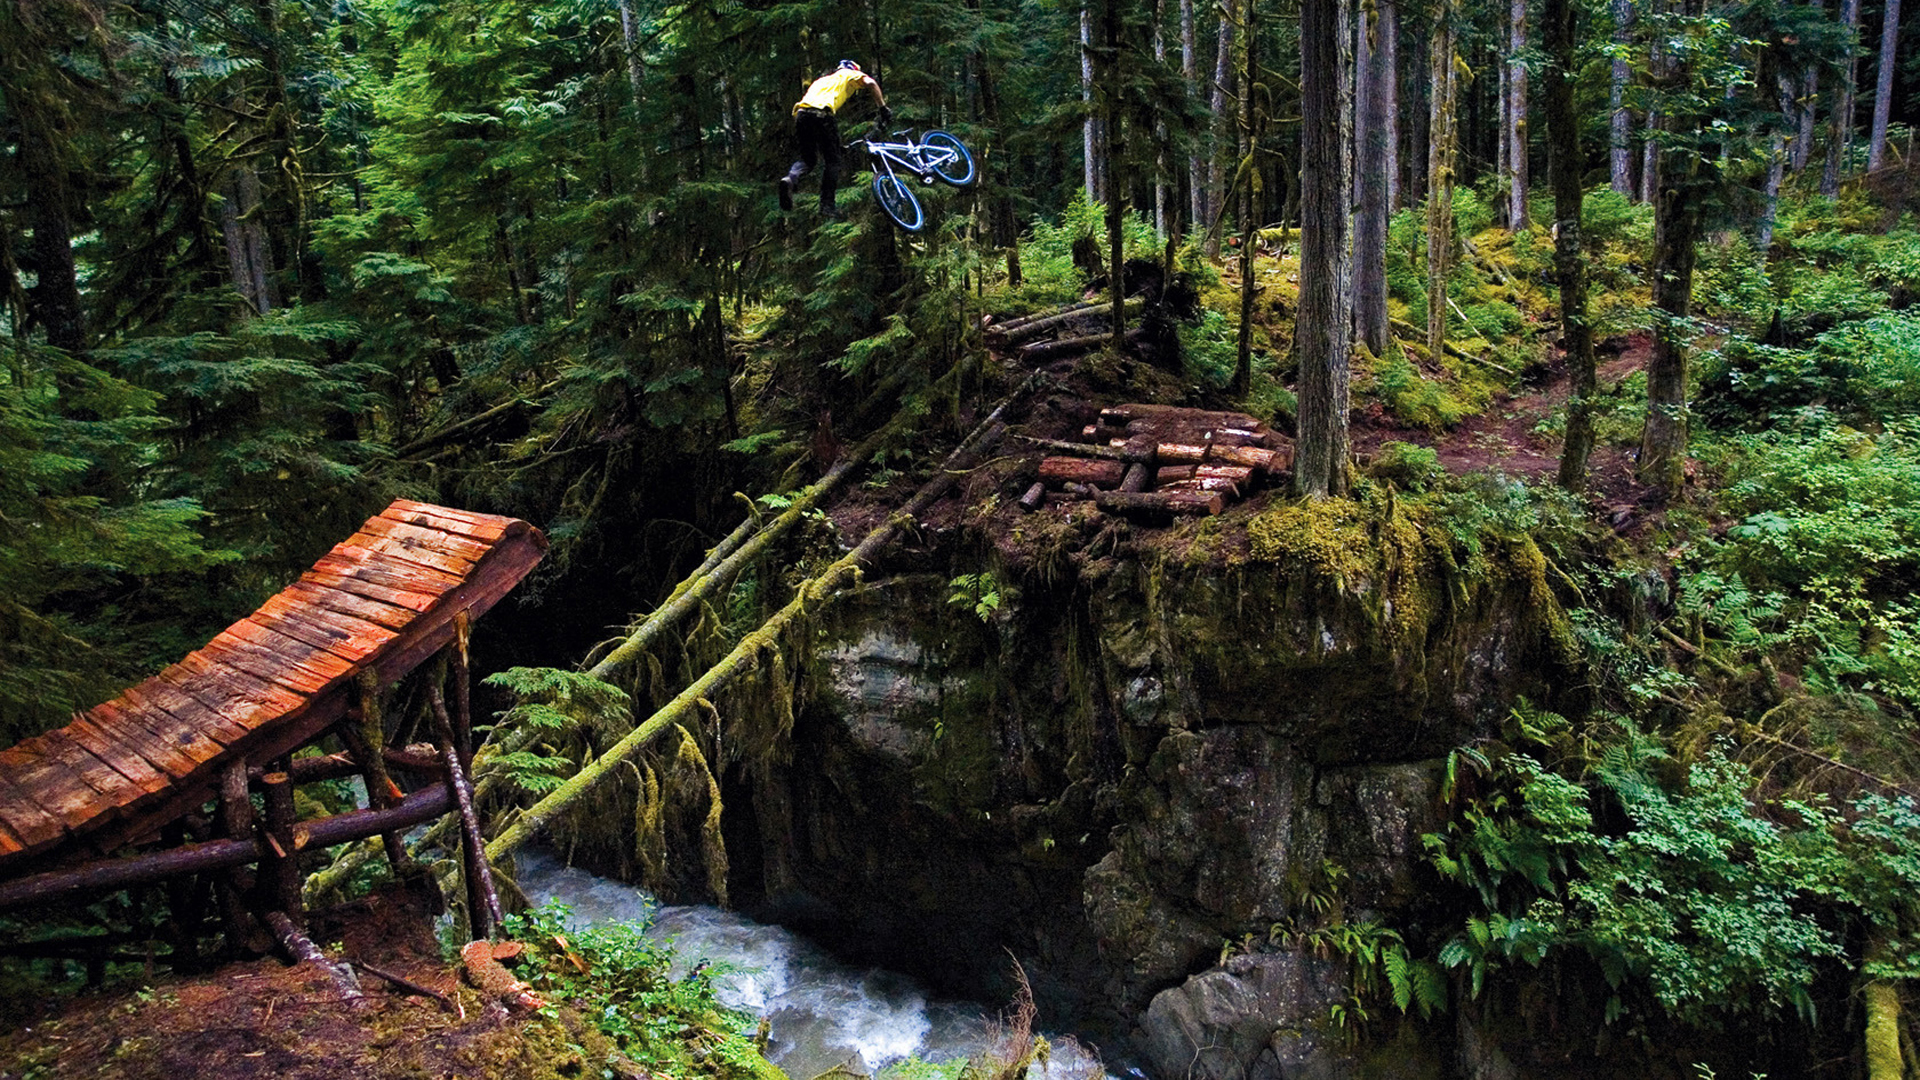 bicycle extreme junp trees forest rivers landscapes people mood